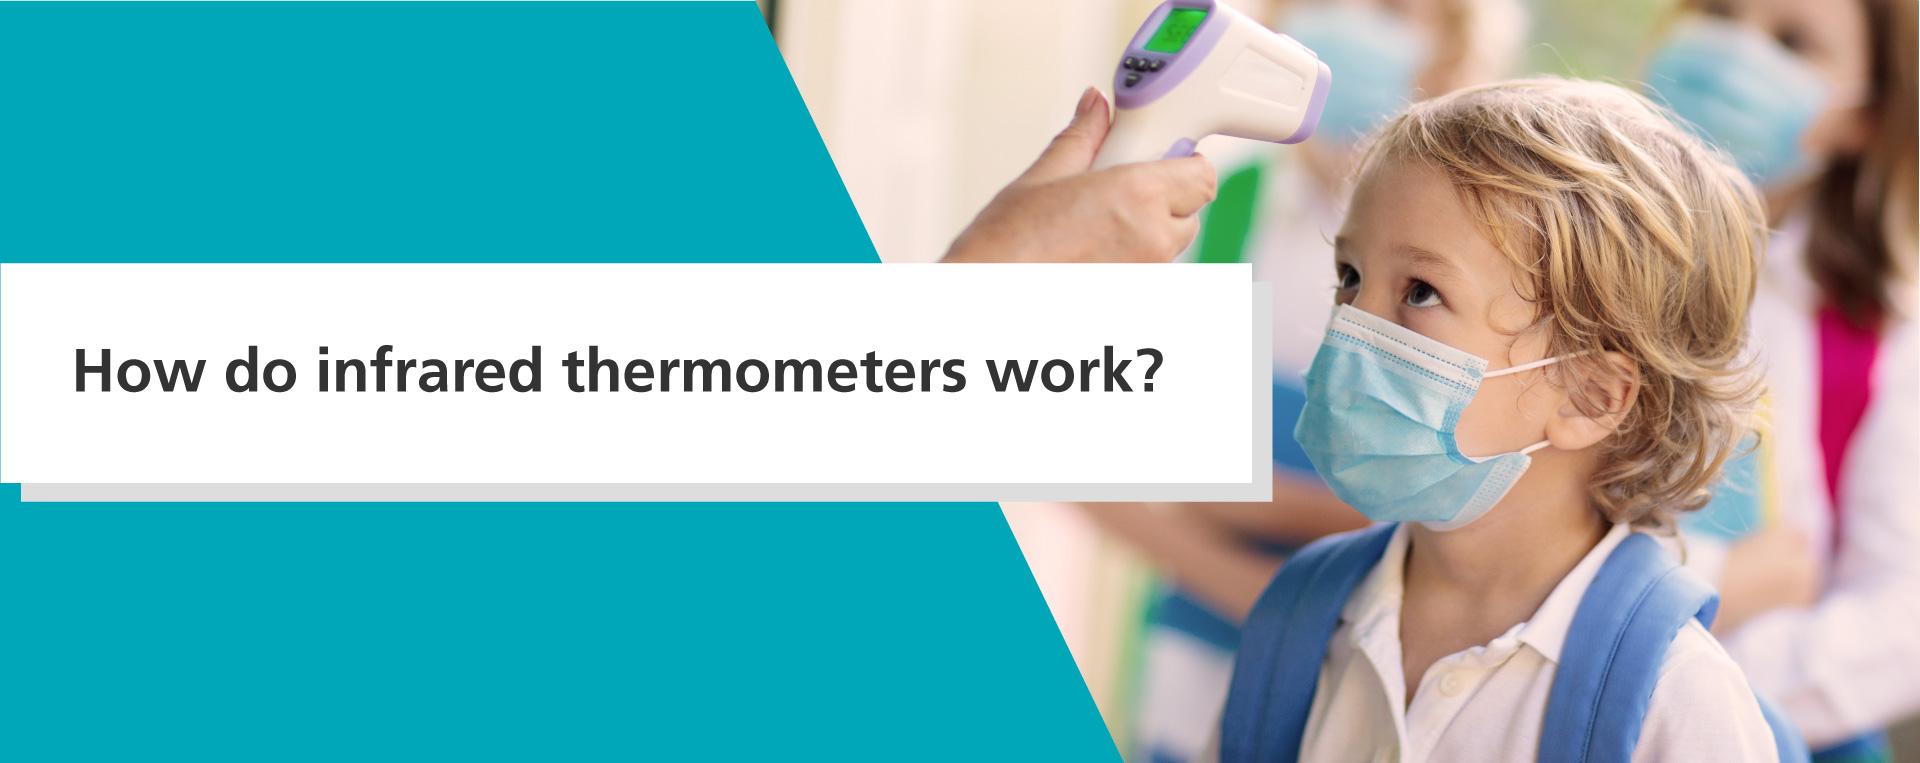 How-do-infrared-thermometers-work